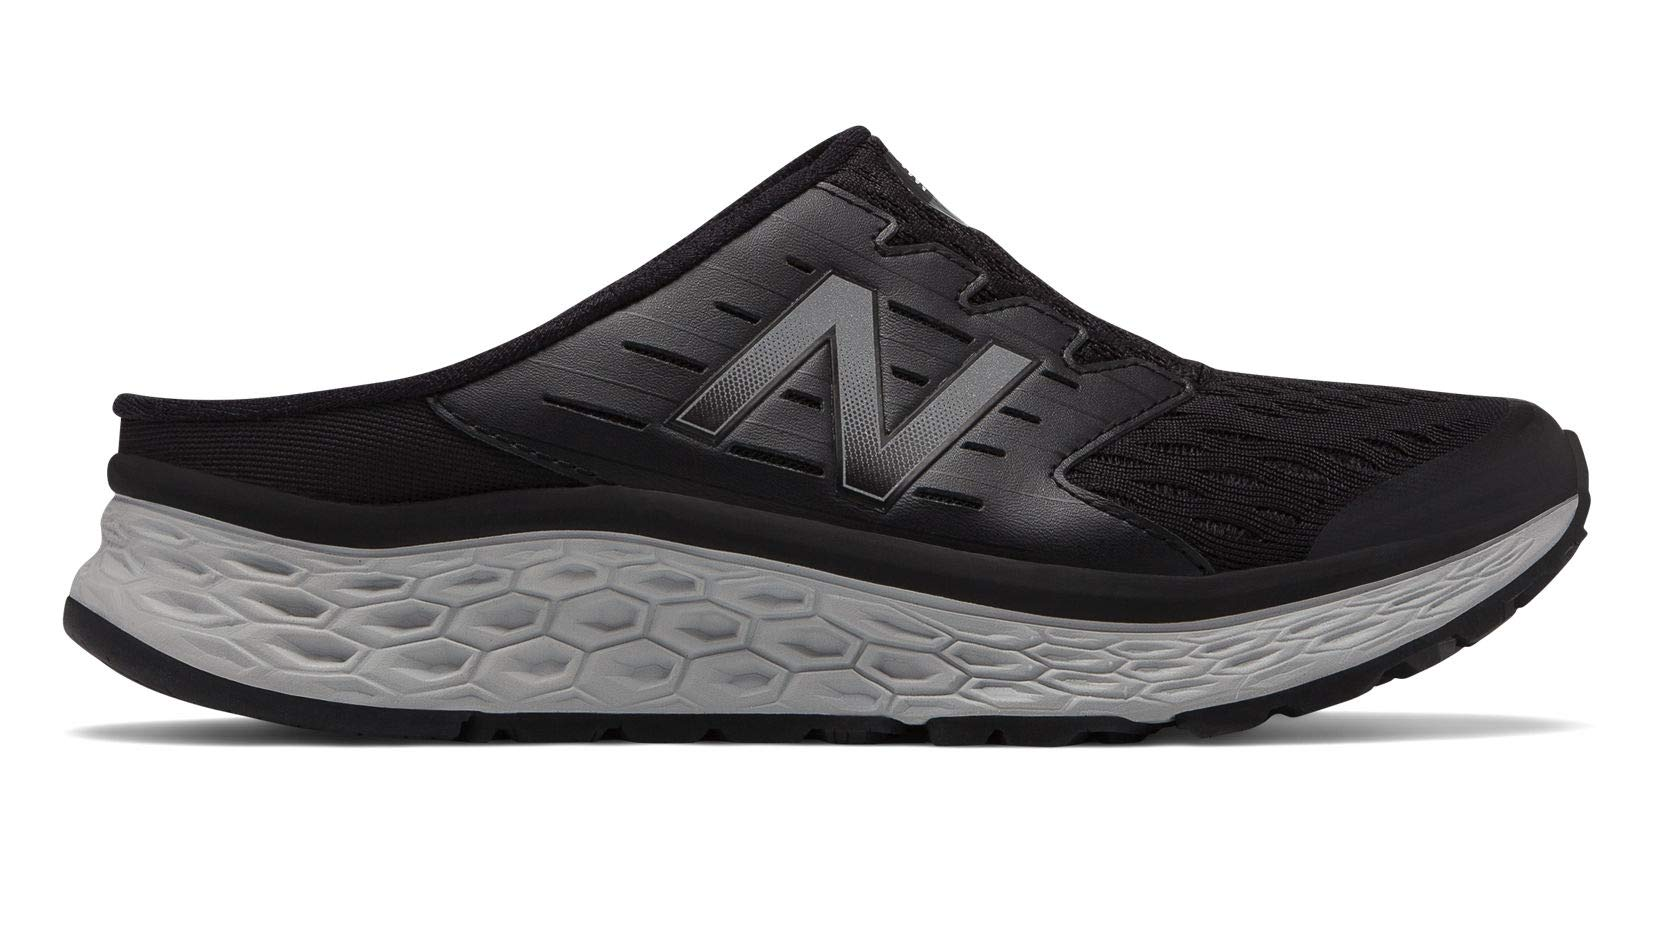 New Balance Sport Slip 900 Shoe Women's Walking 6 Black